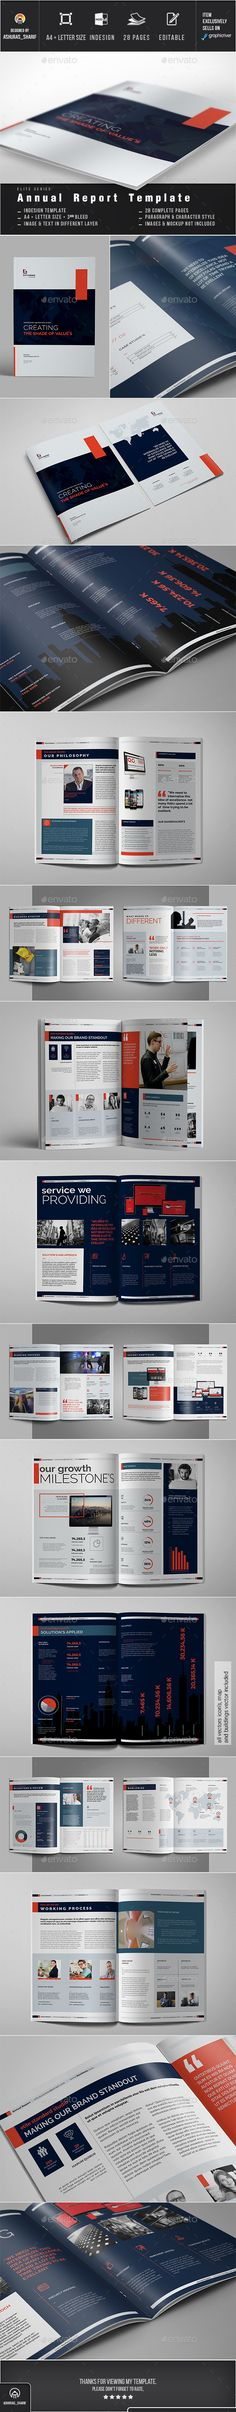 Annual Report by ashuras_sharif Annual Report Template are 28 Pages, Two Different Sizes A4 and US Letter. All units and text are Layered to customize Easily. Als